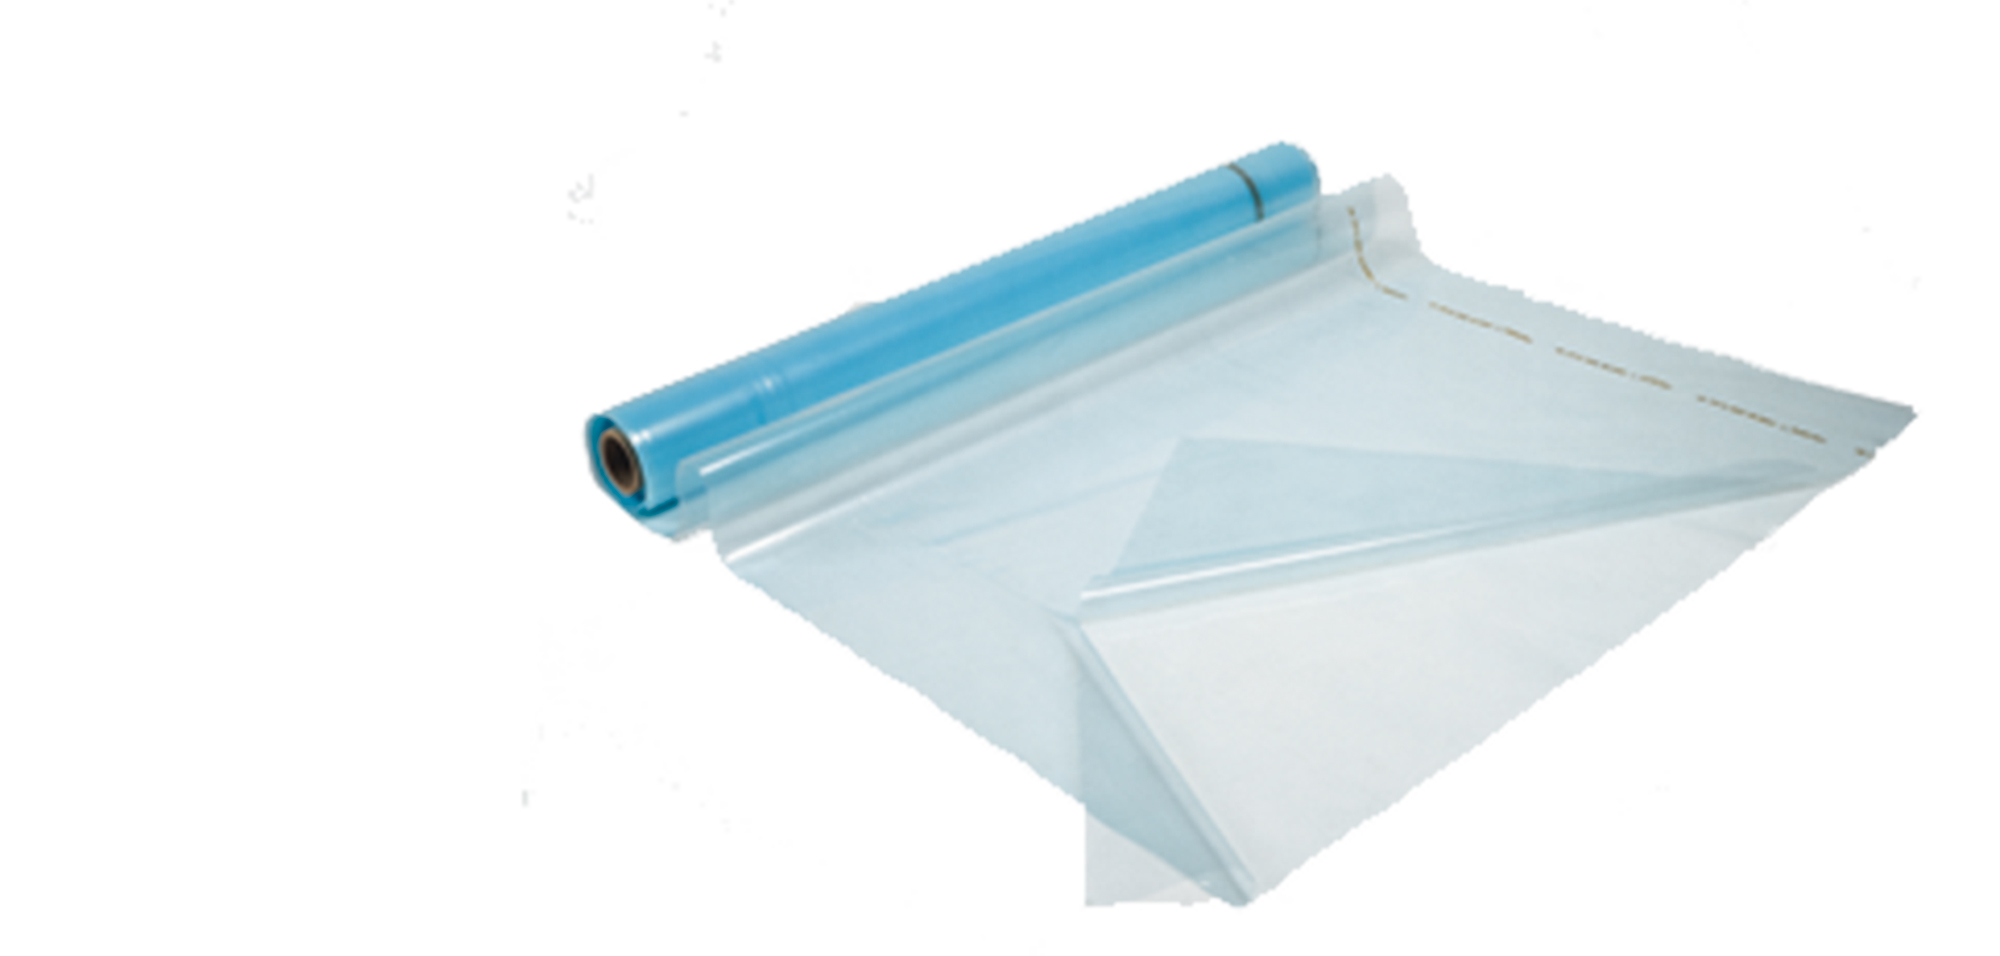 1100018 Sustainable construction foil, daily price. Eco-friendly